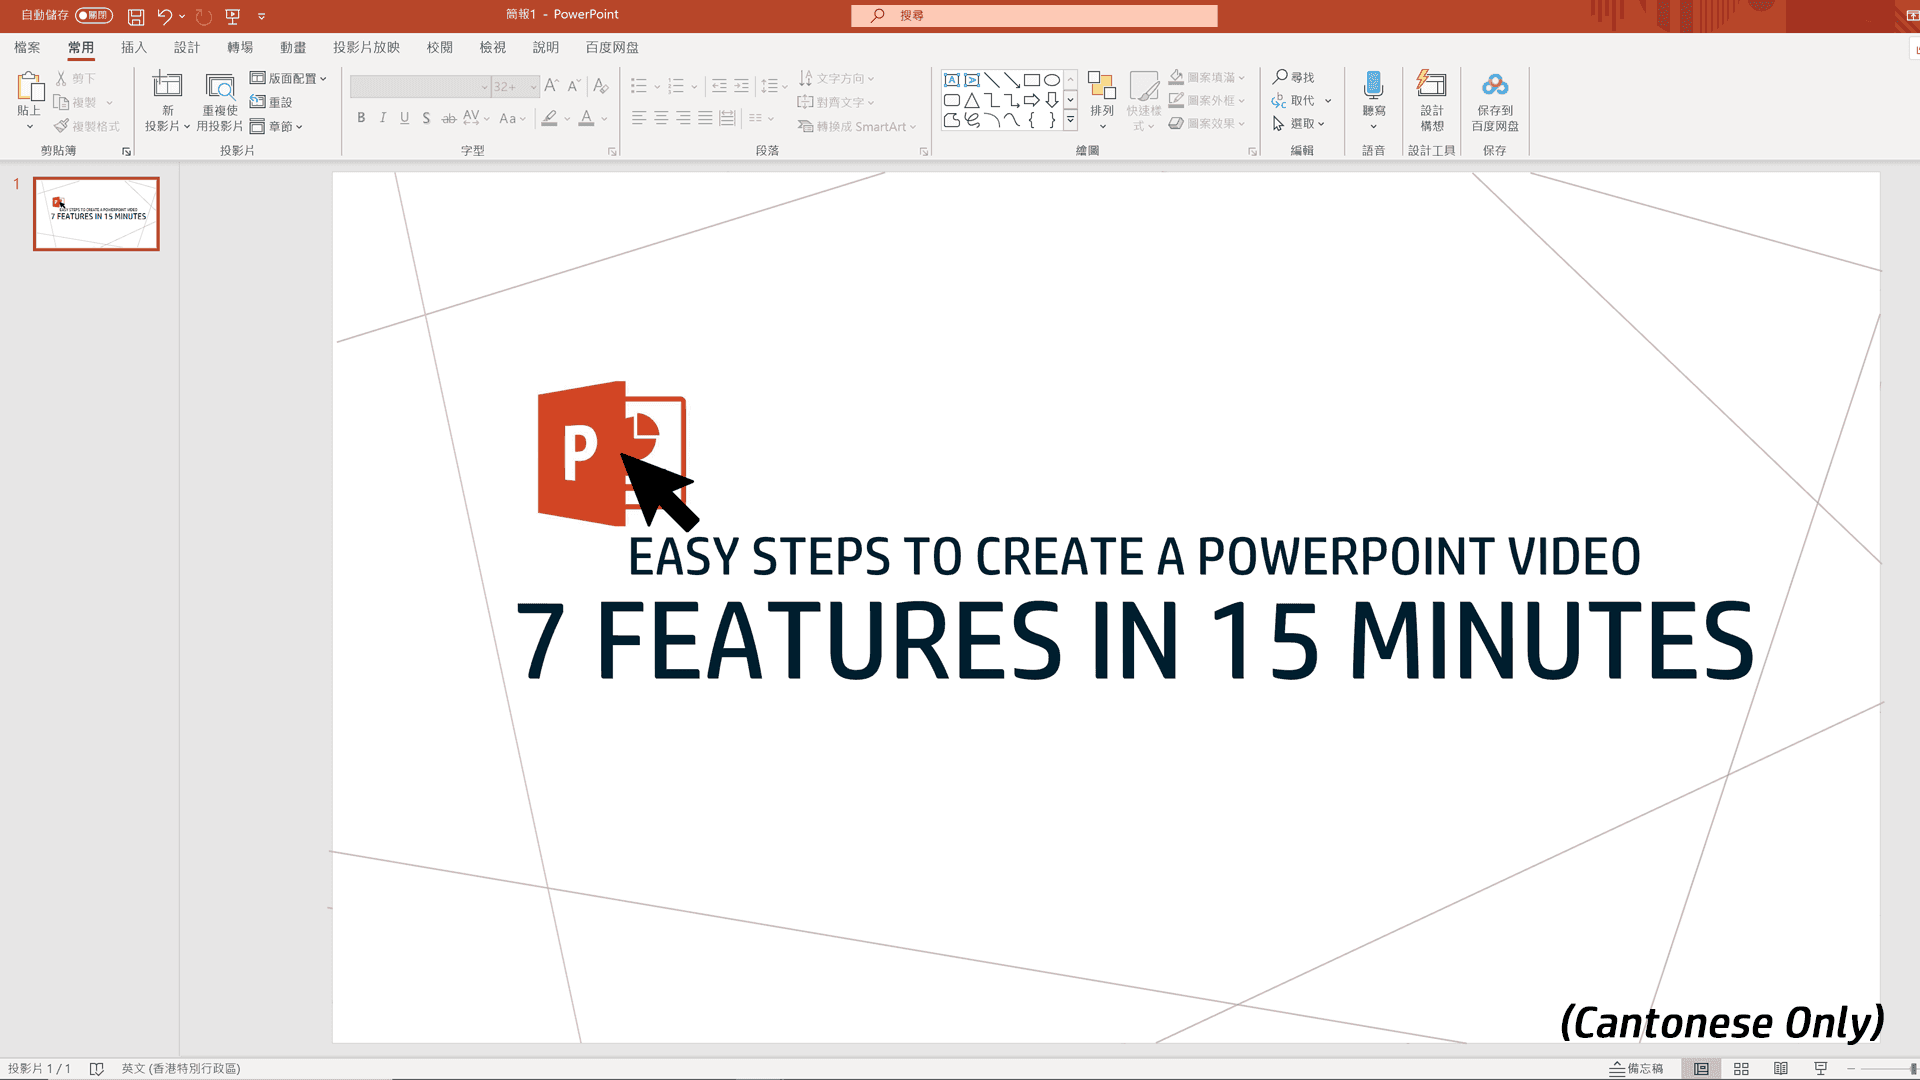 Easy steps to create a PowerPoint video - 7 features in 15 minutes